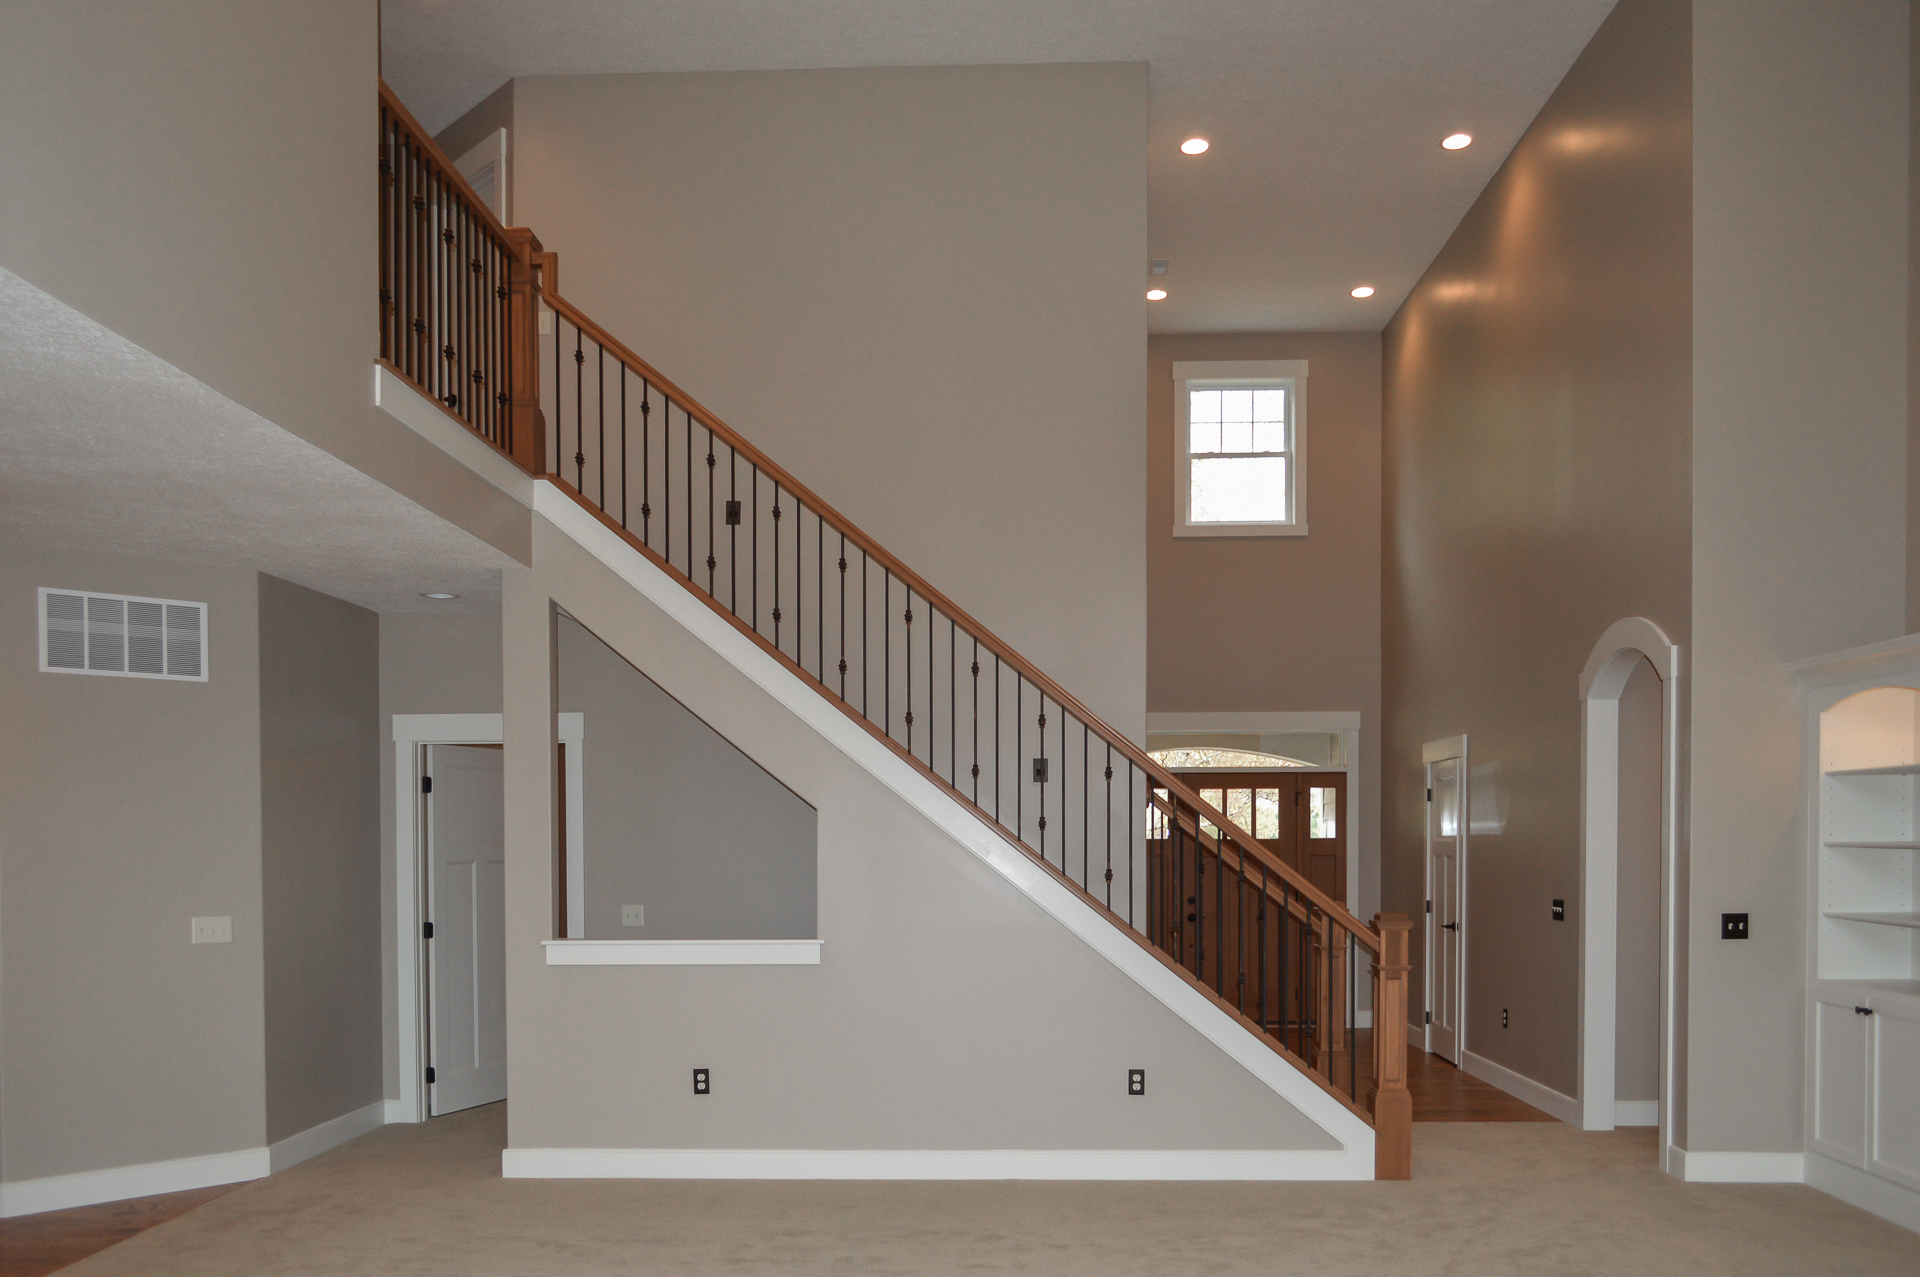 Stained newel posts & railings, and knuckles-double/plain/plain/double iron balusters